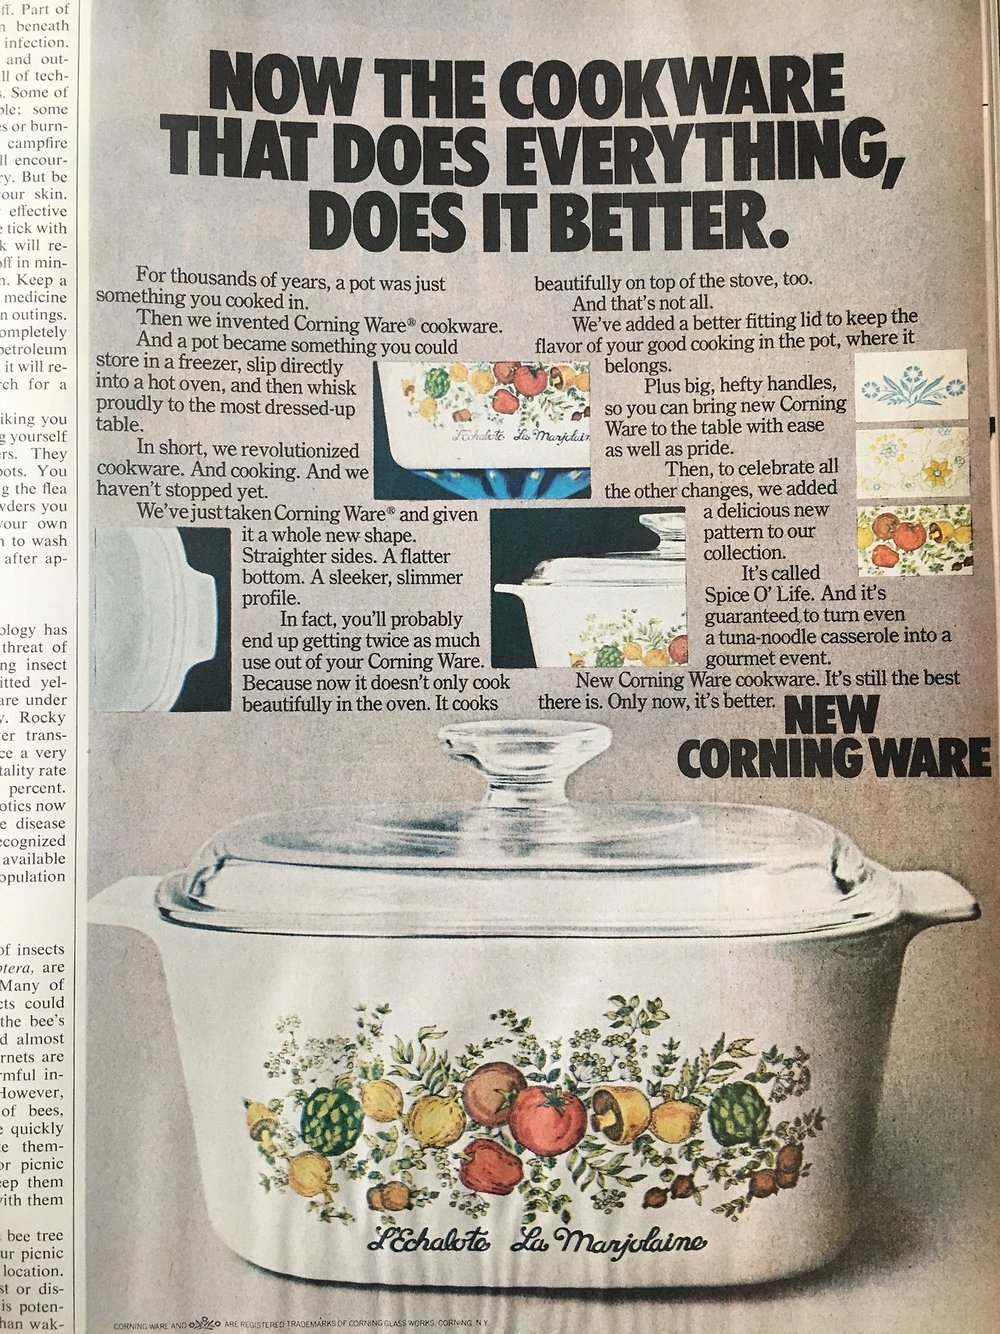 Corning Ware announcing new changes and the new Spice O' Life pattern. Better Home and Gardens. June 1974. In 1972, Corning Ware made some changes to the original design and decided to add some new patterns alongside the iconic blue cornflower design. Although this ad ran in 1974, Spice O' Life (also known as French Spice) was introduced in 1972 and if you grew up in the '70s and '80s, it's pretty much a guarantee that someone in your family had this pattern. Spice O' Life was in production until 1987 and is the second most sought after pattern among collectors. Personally, I own the very rare, but very '70s folk-art inspired Country Festival pattern.